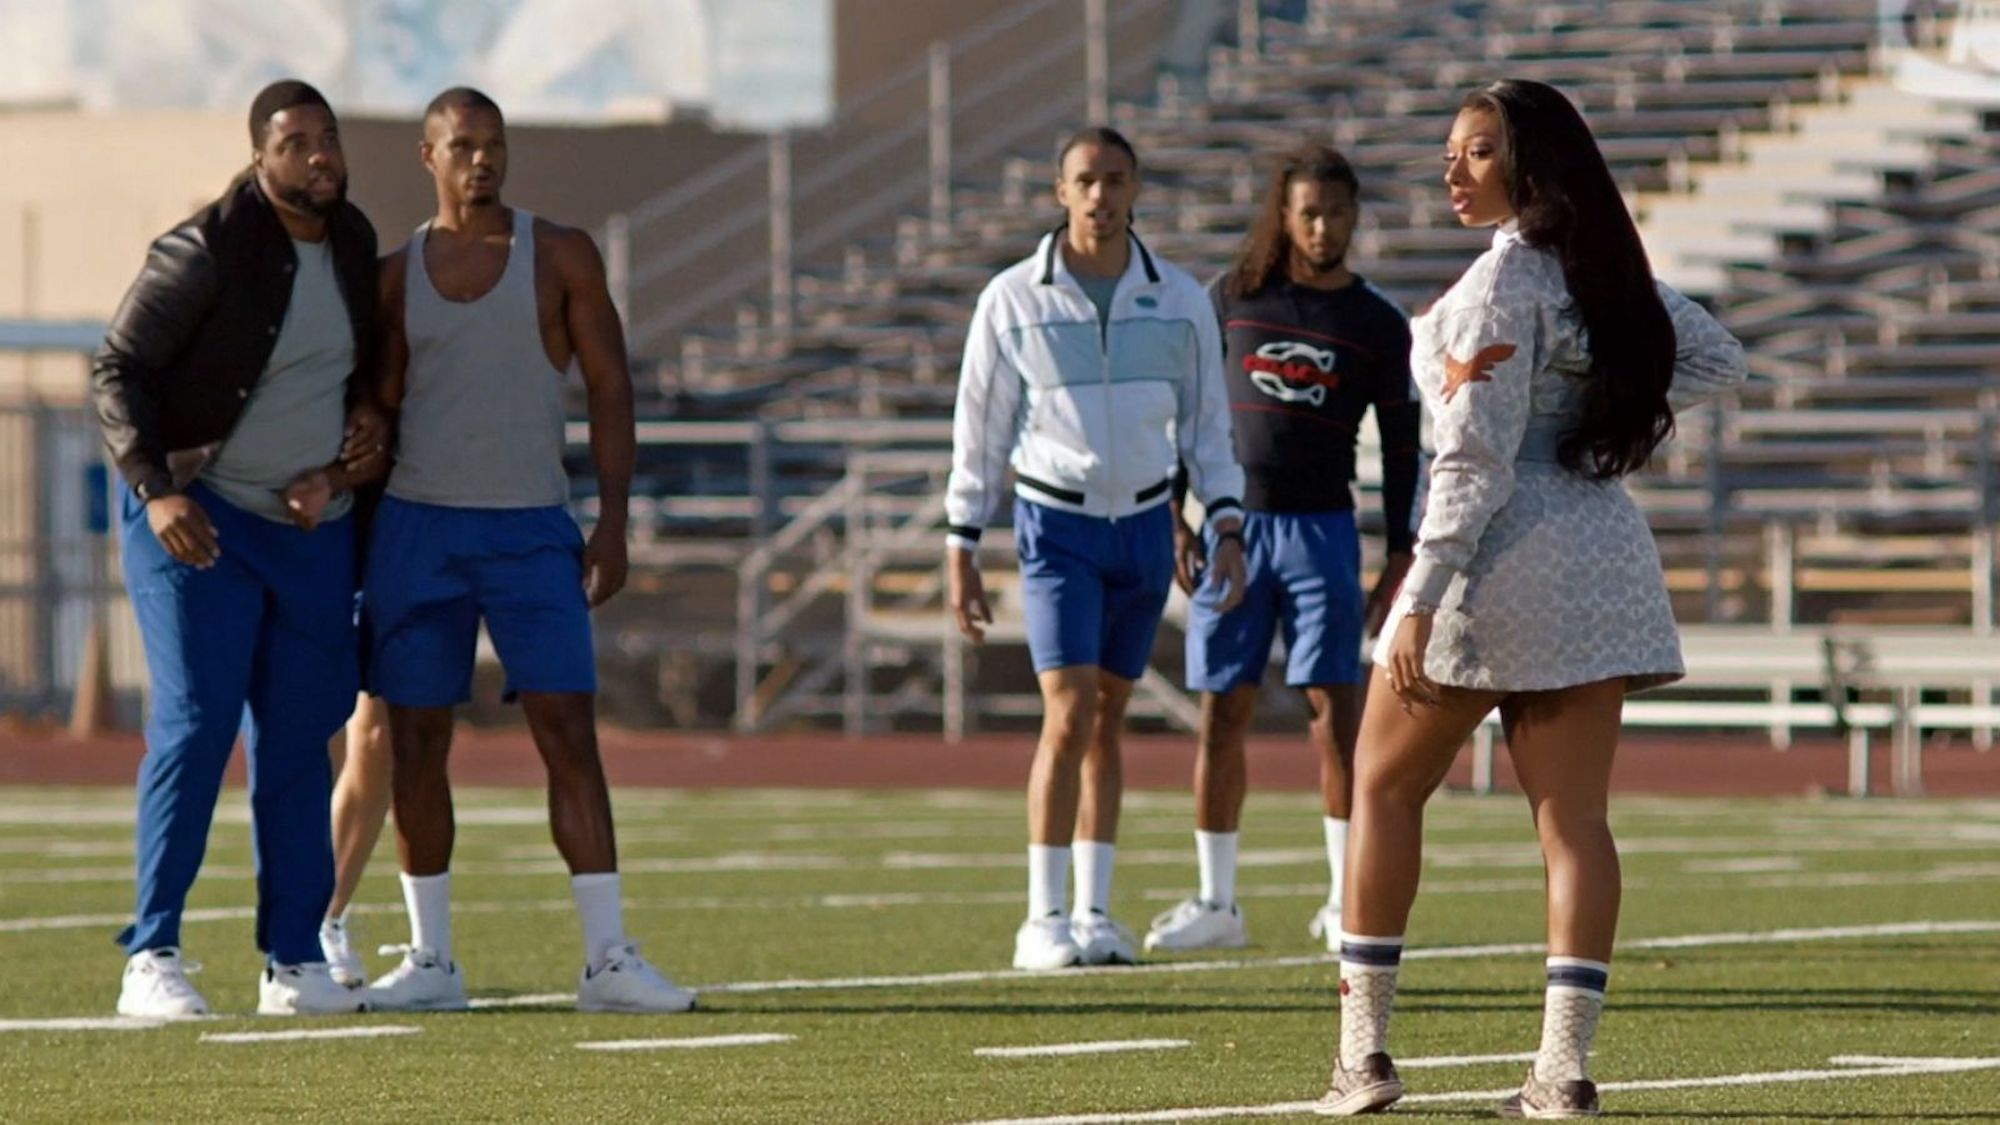 Megan Thee Stallion Coach AW21 campaign on sports field